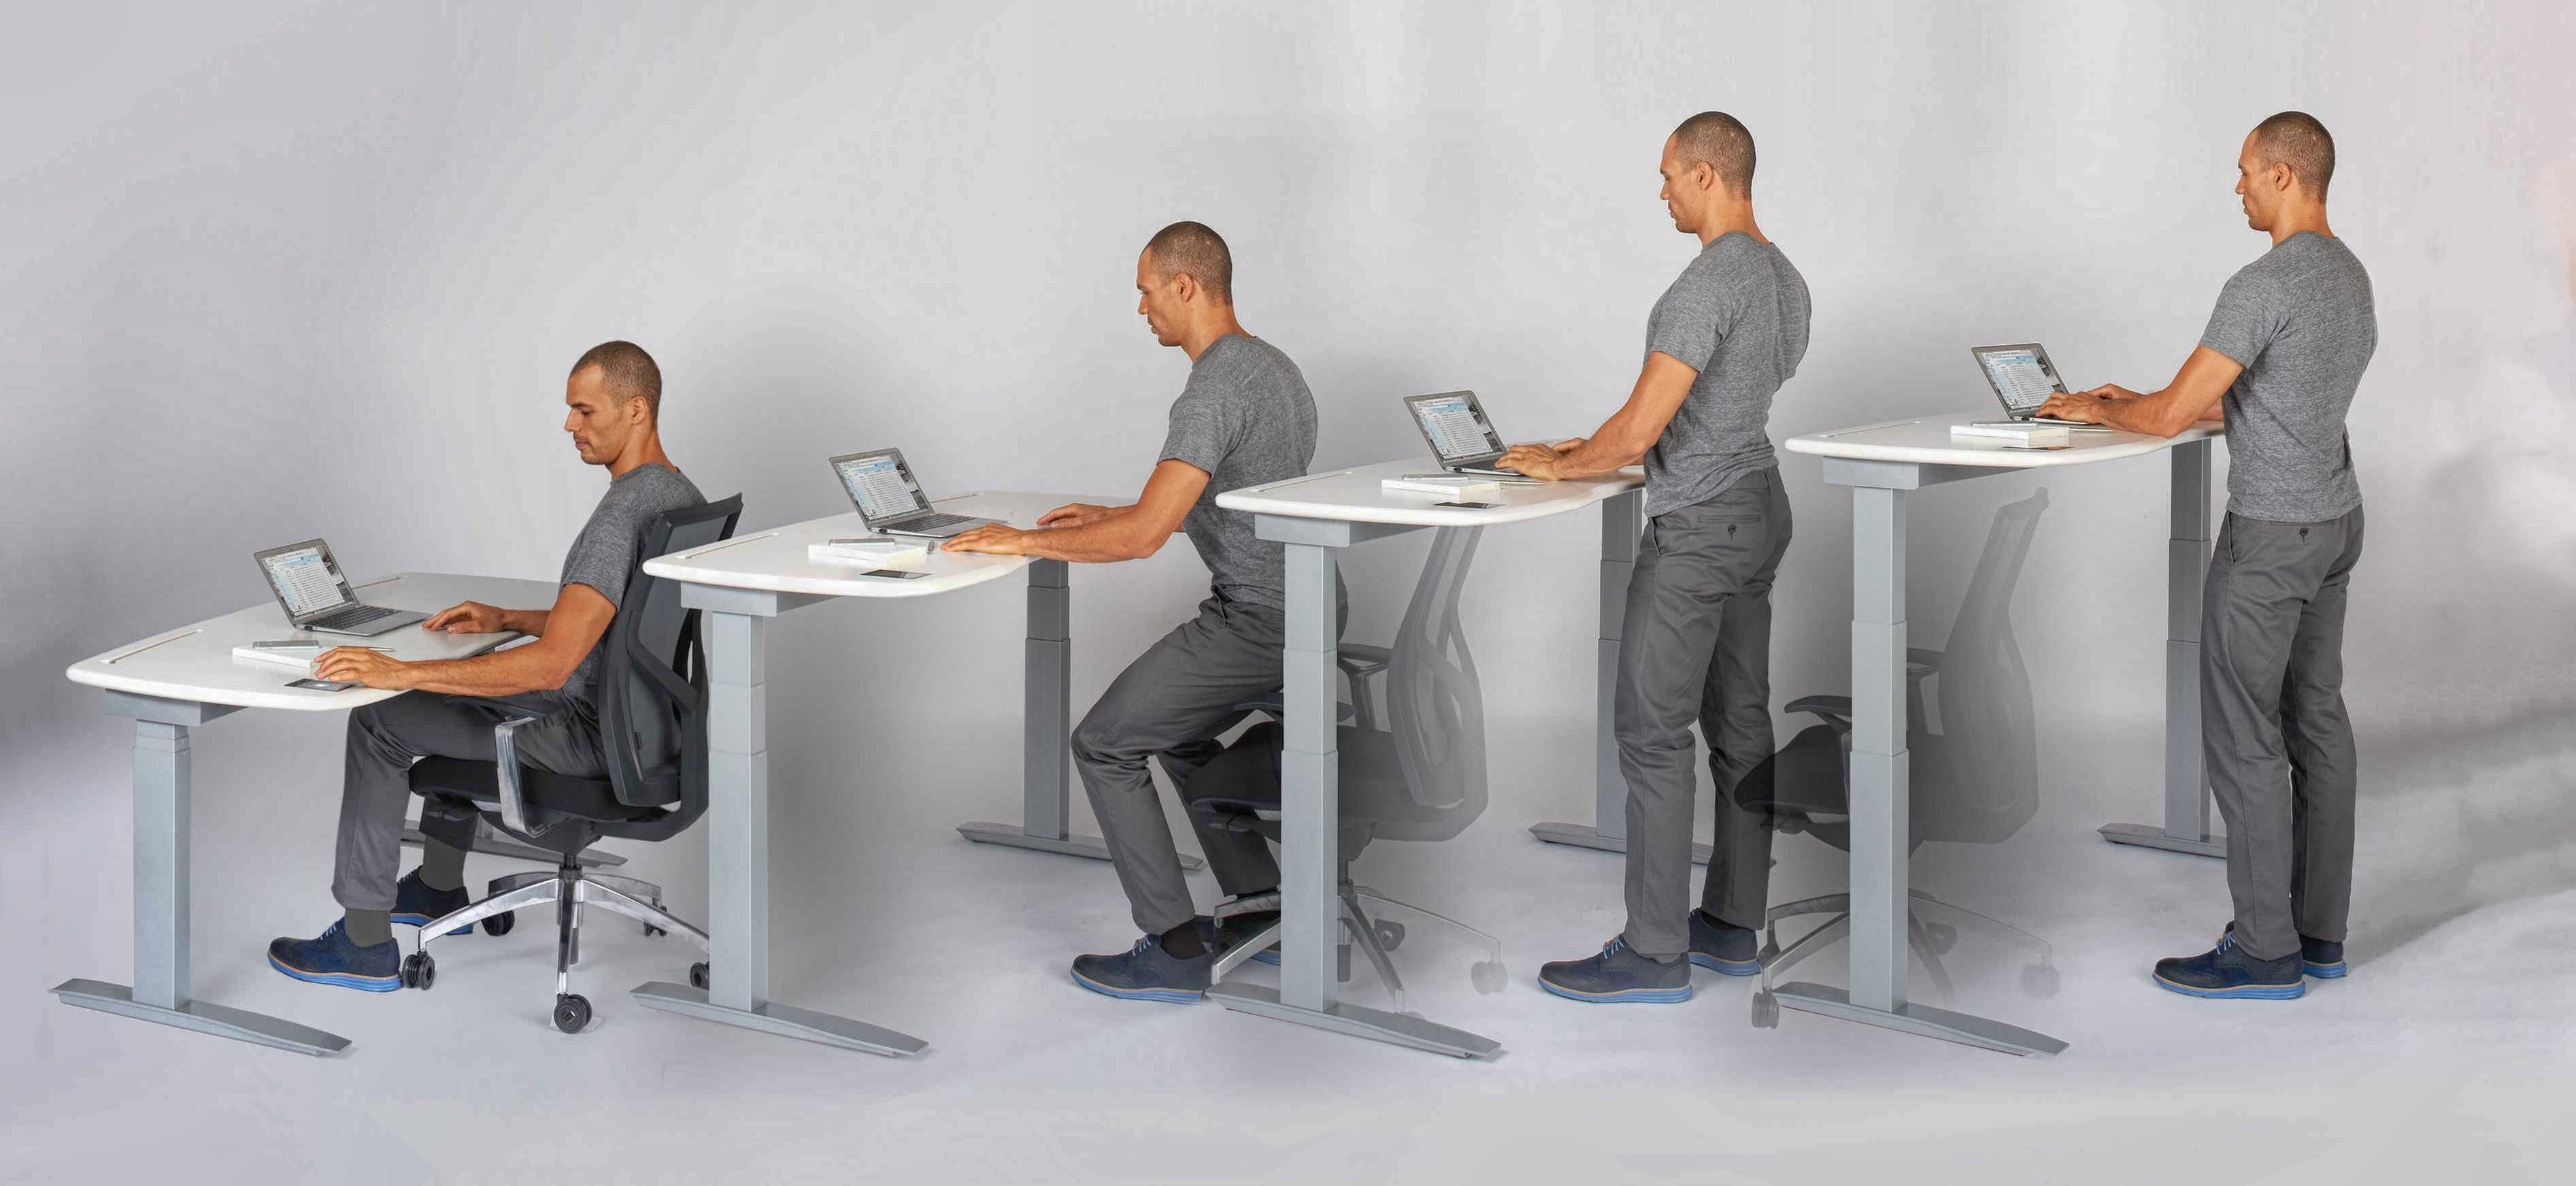 up com chair stand onsingularity for office every accessories standing desks desk have owner chairs tall should